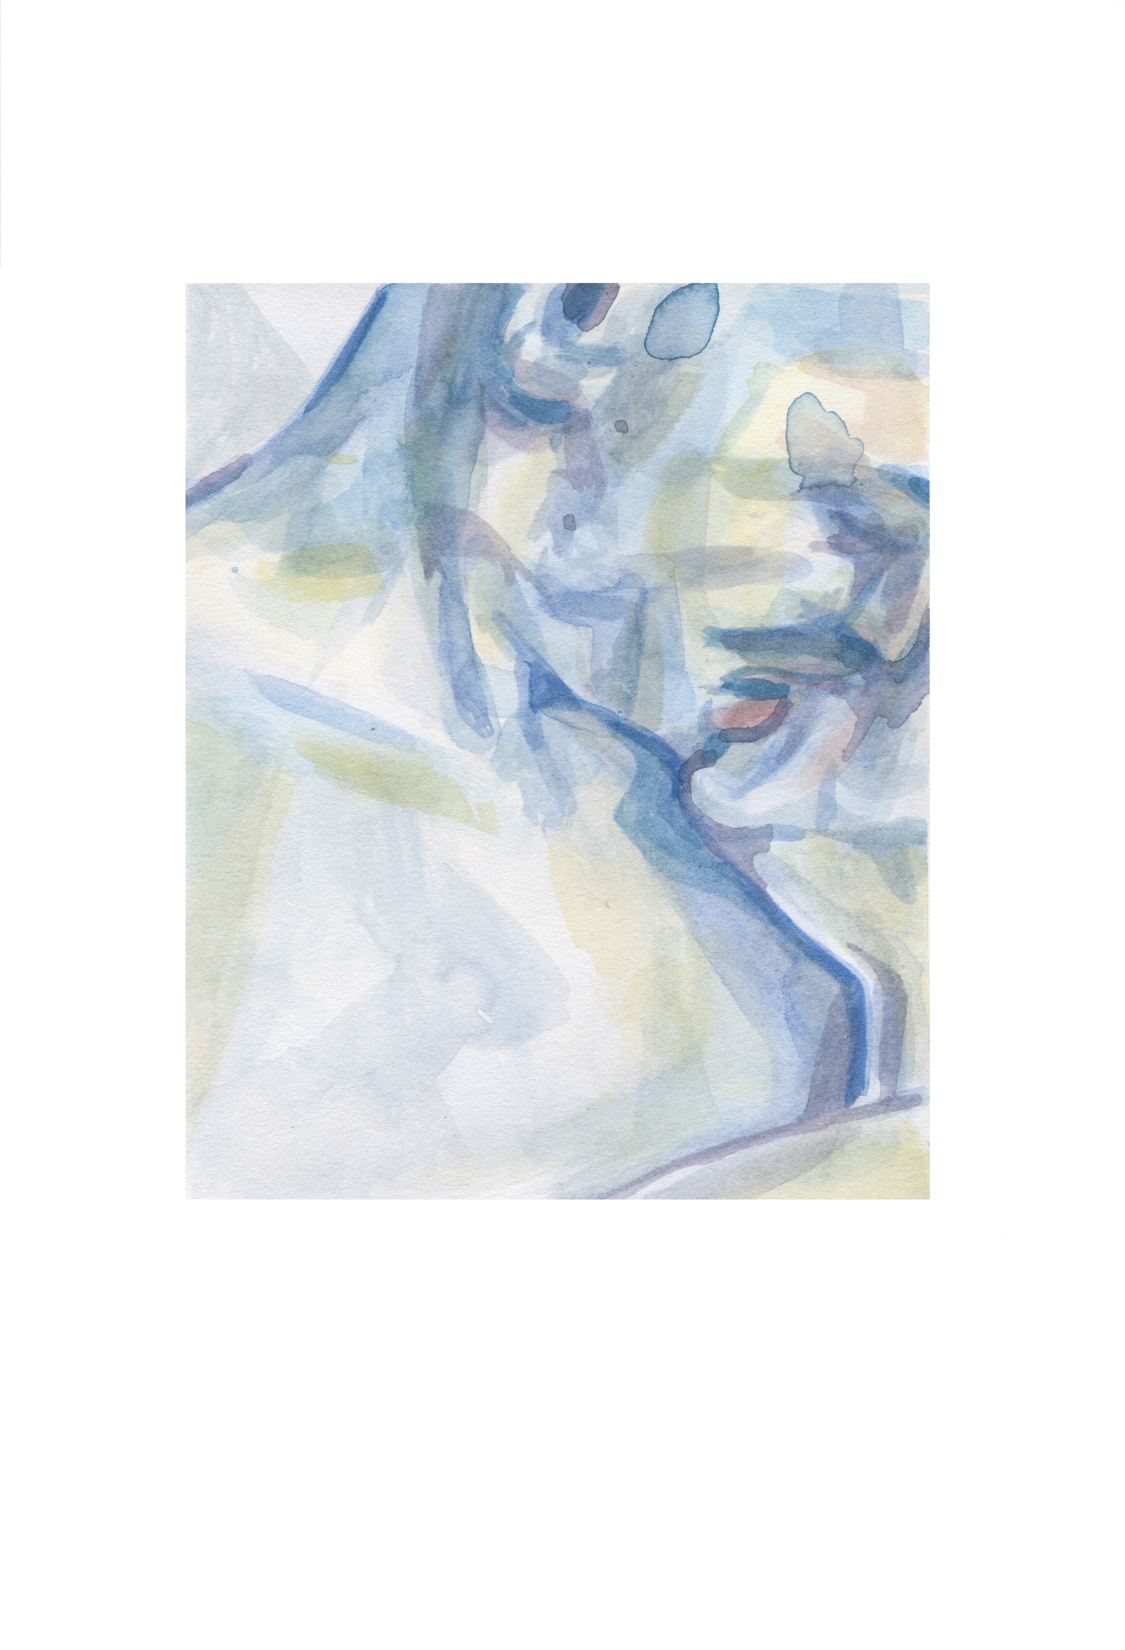 This watercolor depicts a figures head and shoulders in loose lines and thin washes of blue and light green. The composition cuts the figure off at the top of their ear and just below the shoulder. They may be sleeping; with eyes closed, mouth slight